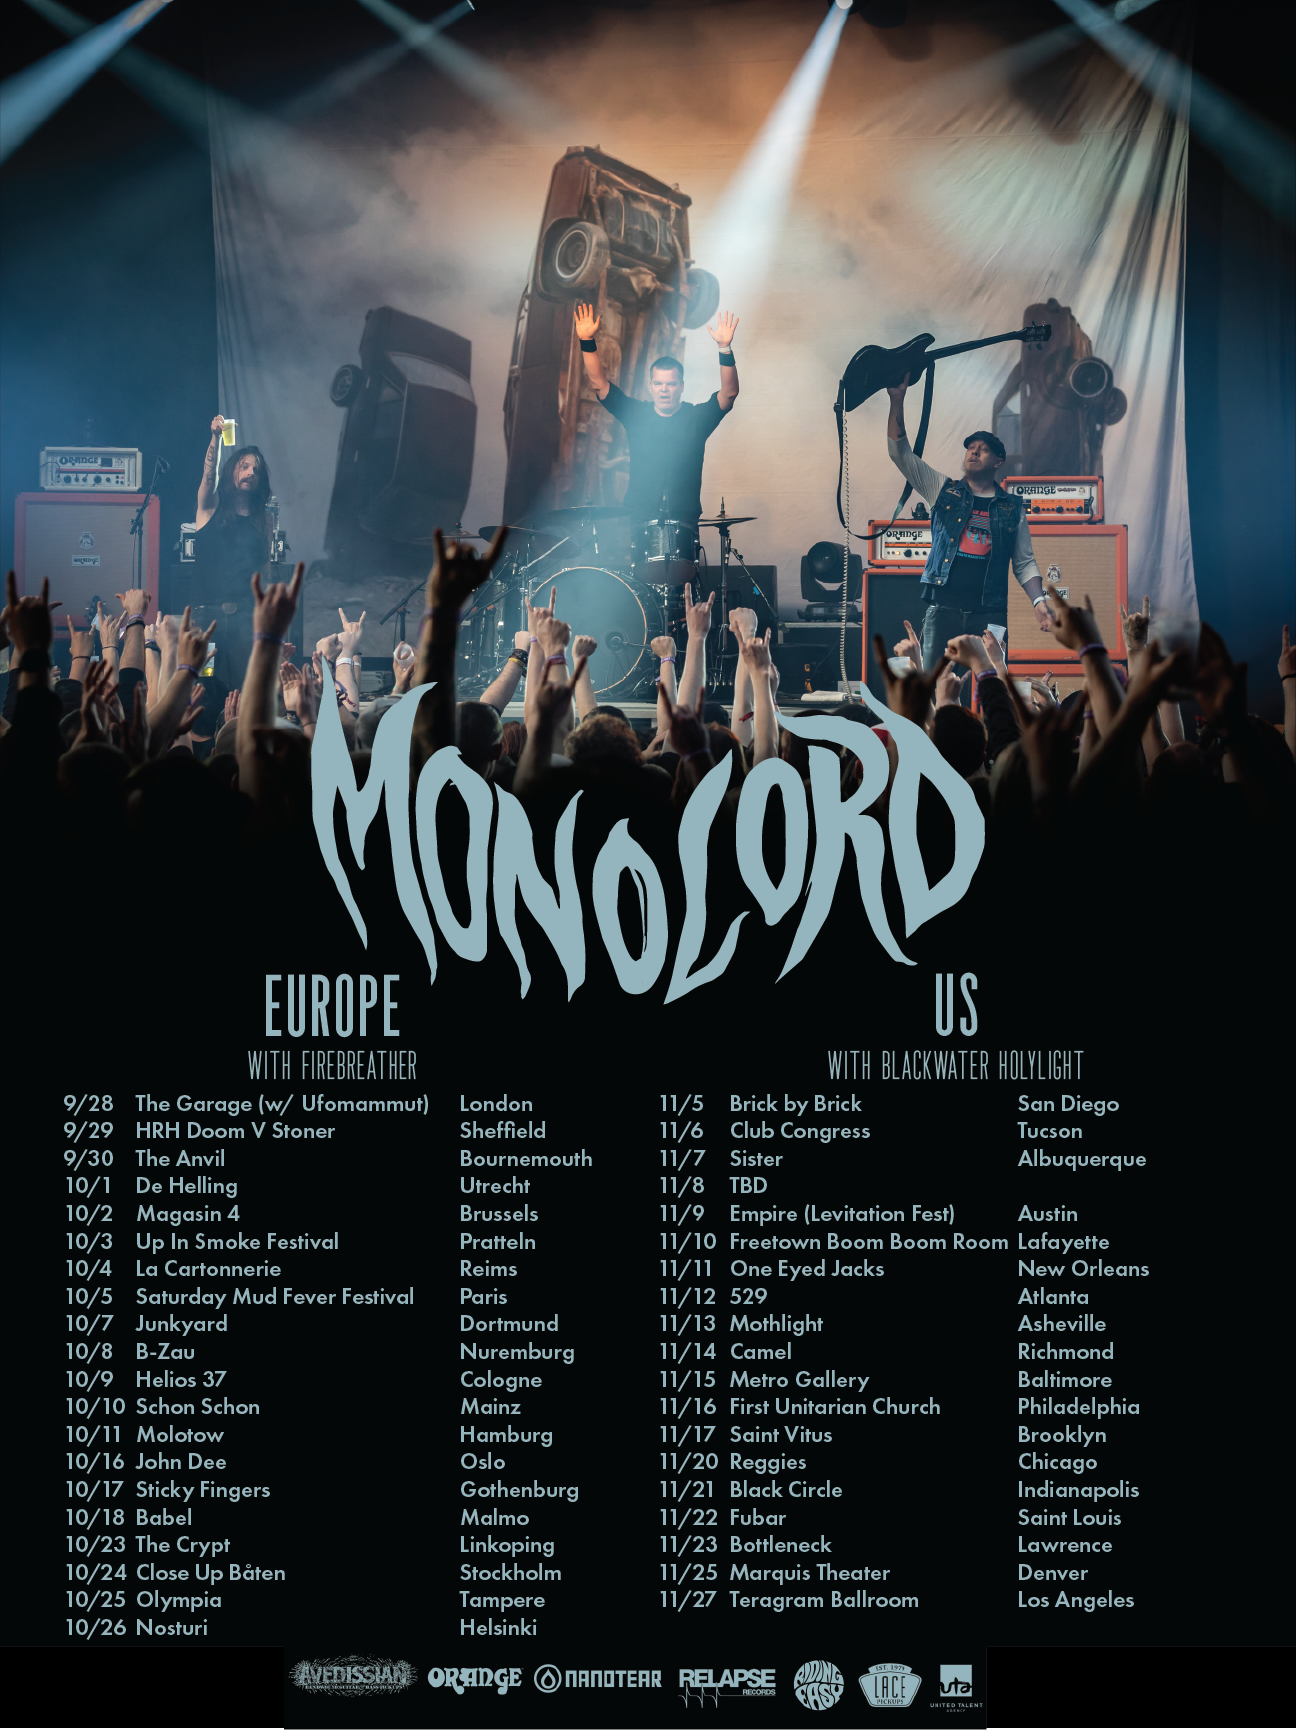 Catch Blackwater Holylight on their US tour with  Monolord  and Space Cadaver. Tap the image to purchase your tickets!